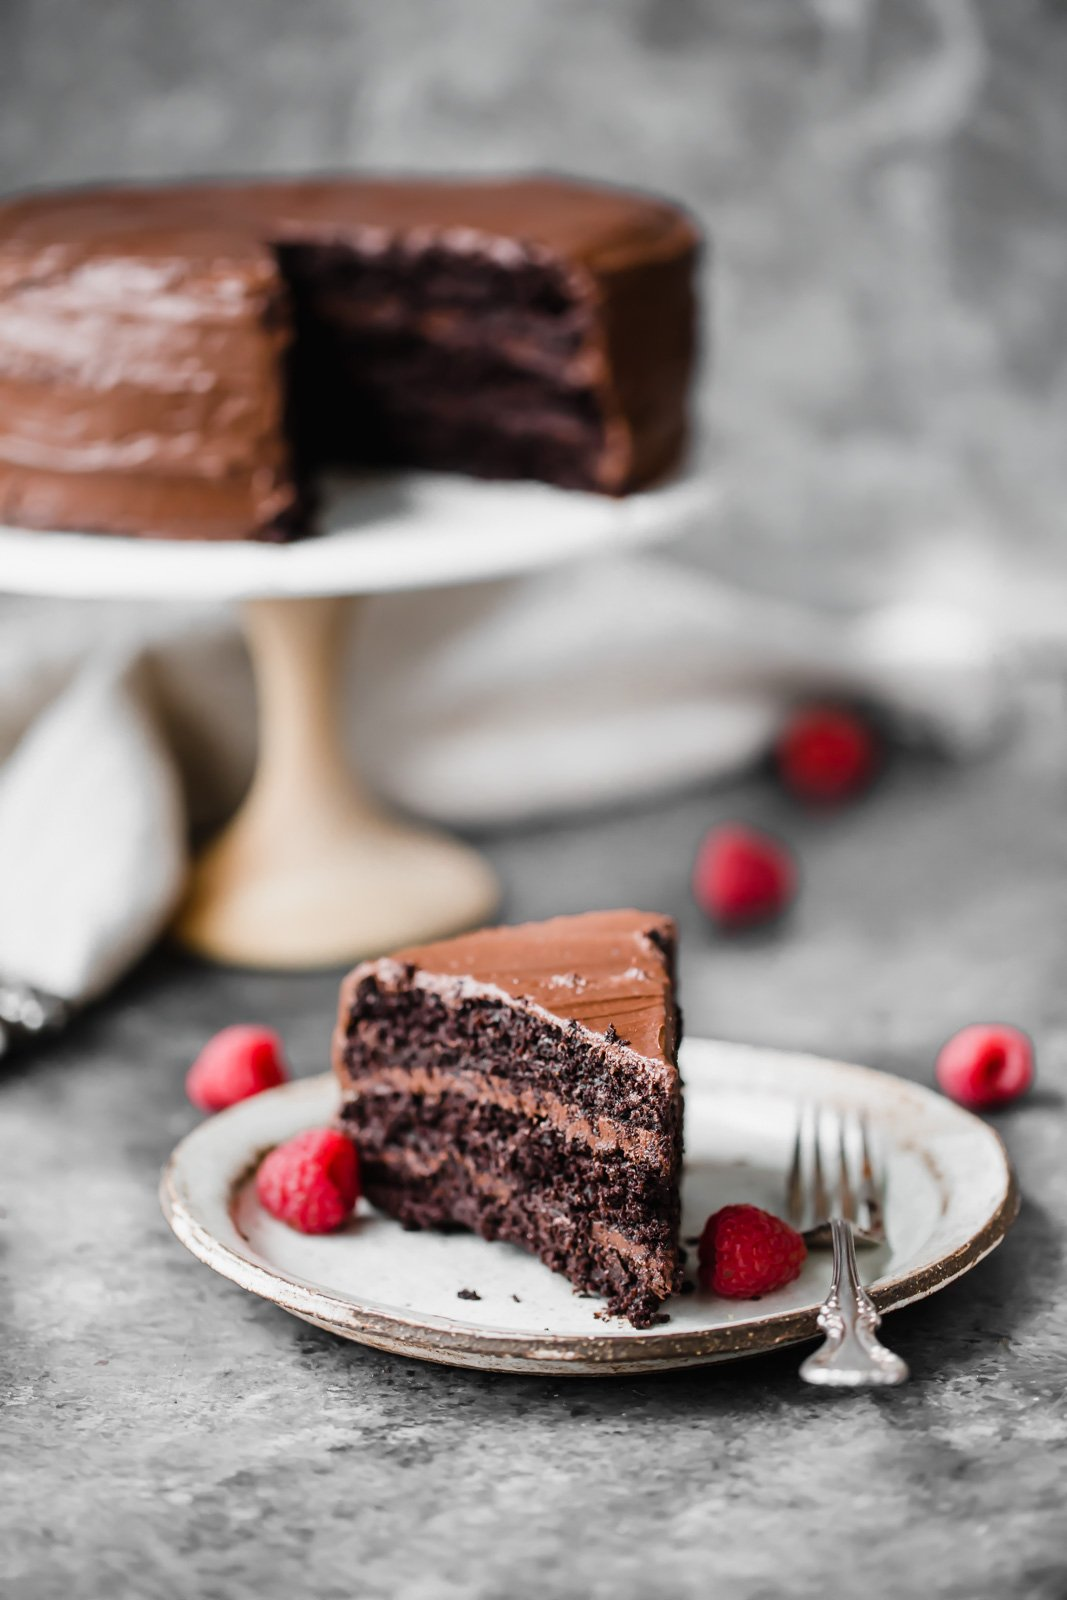 chocolate cake on a plate with raspberries